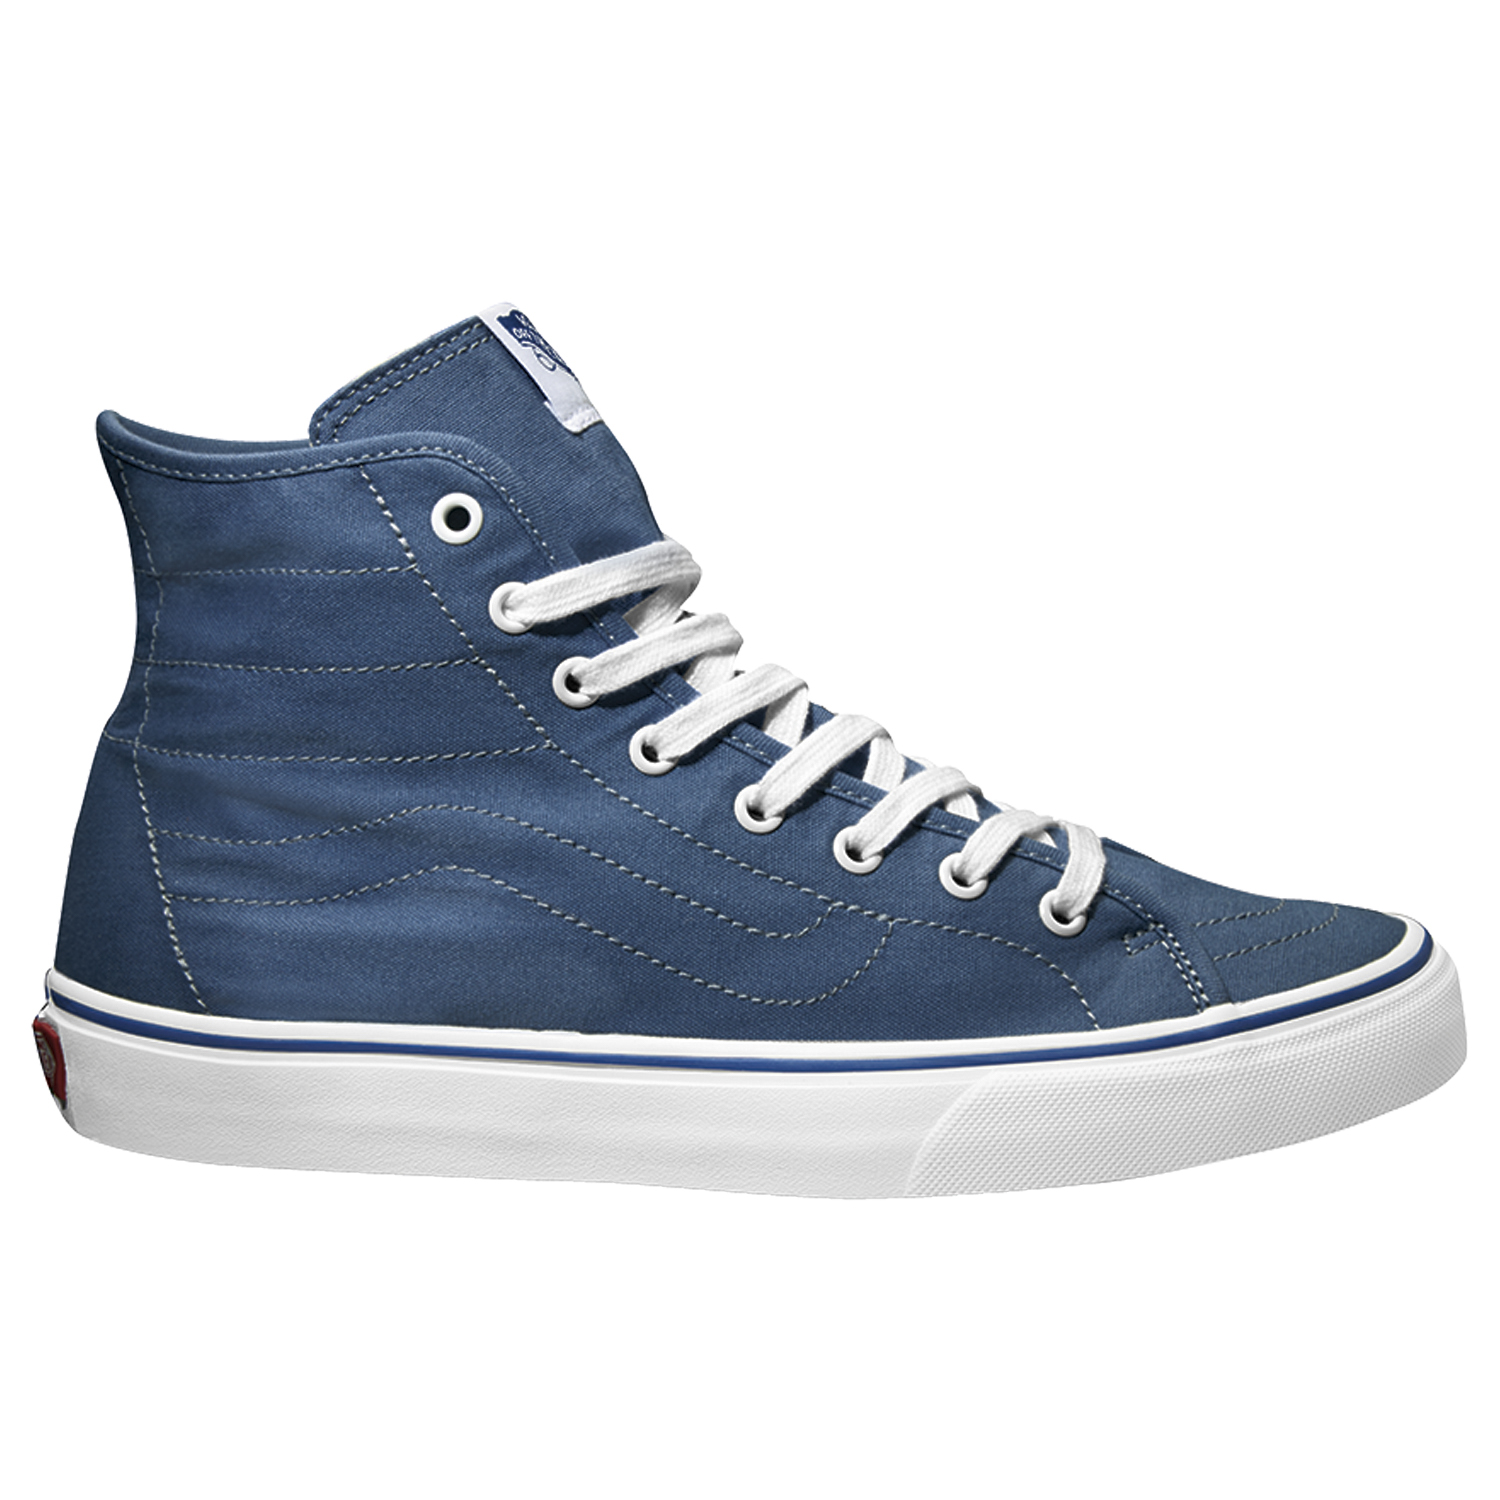 vans-sk8-hi-decon-canvas-navy-true-white-119-90